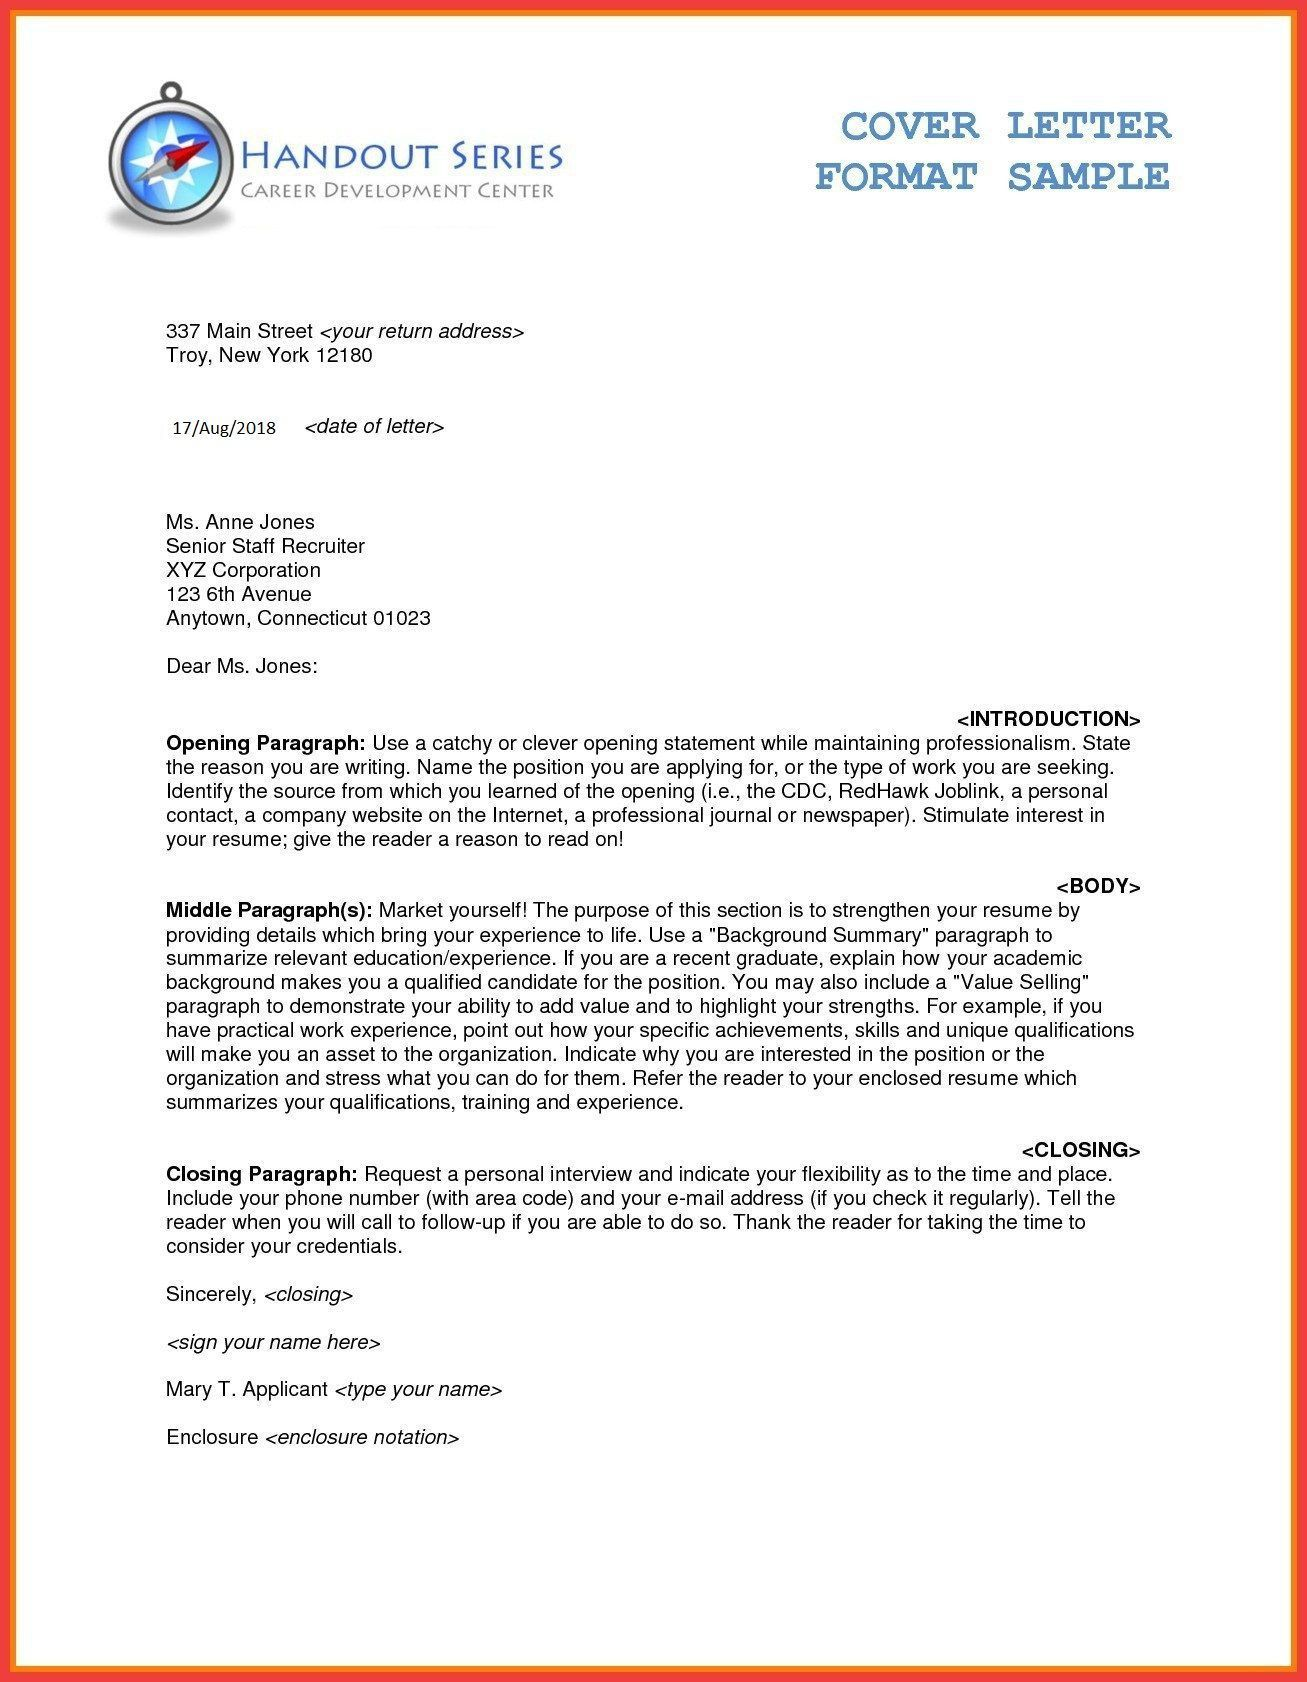 003 Surprising Busines Letter Template Word High Def  Cover FreeFull